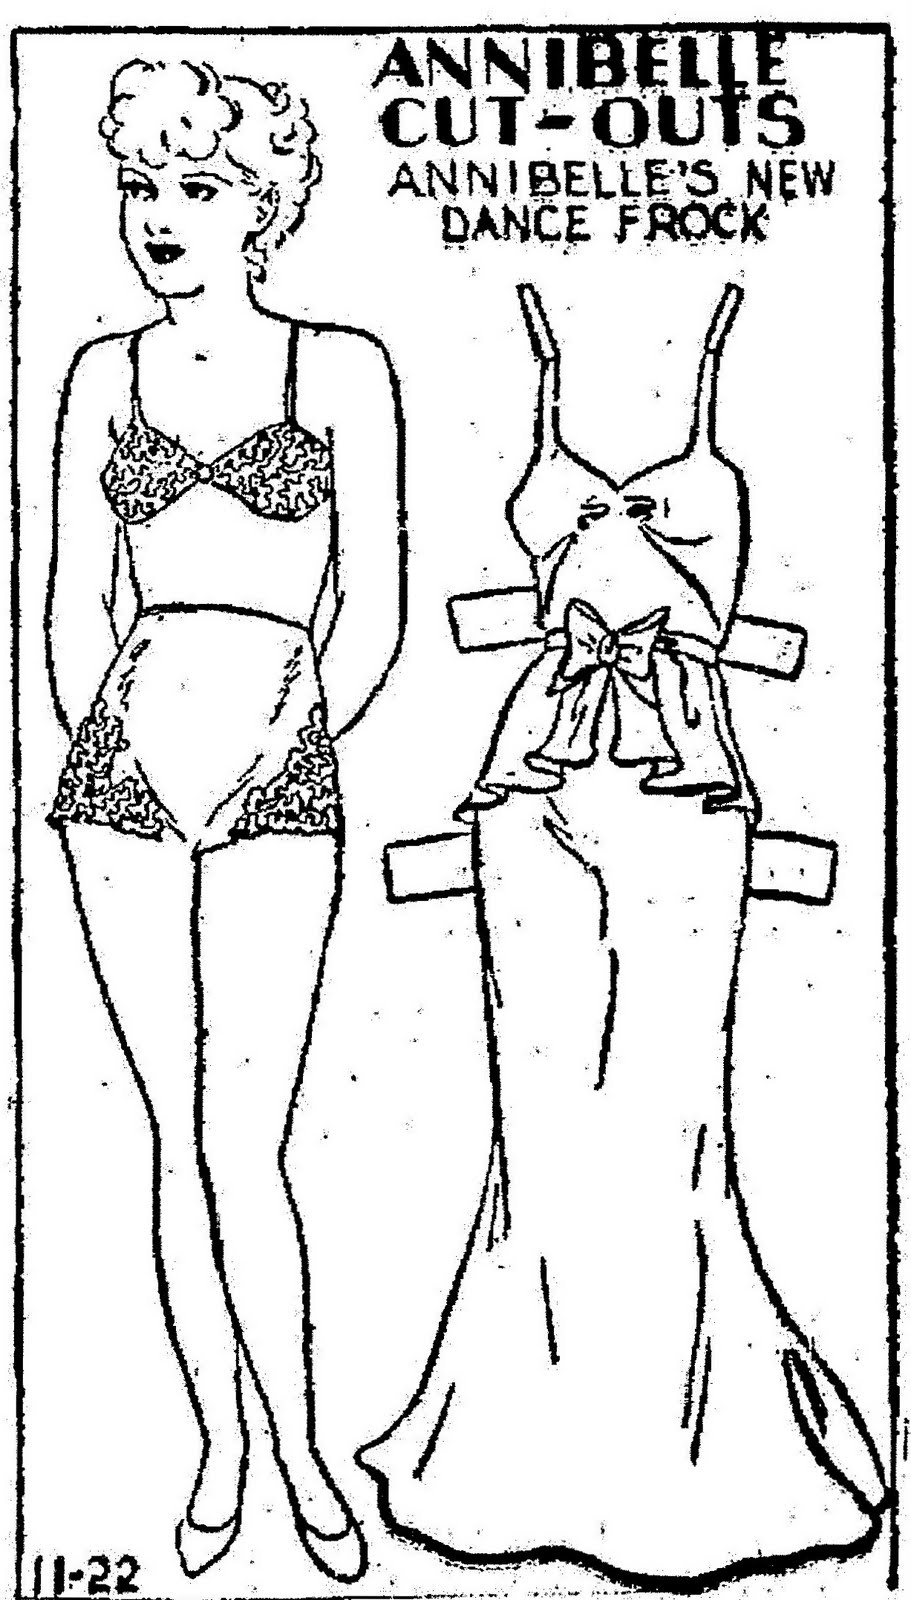 Mostly Paper Dolls: Paper Dolls From The ANNIBELLE Comic Strip